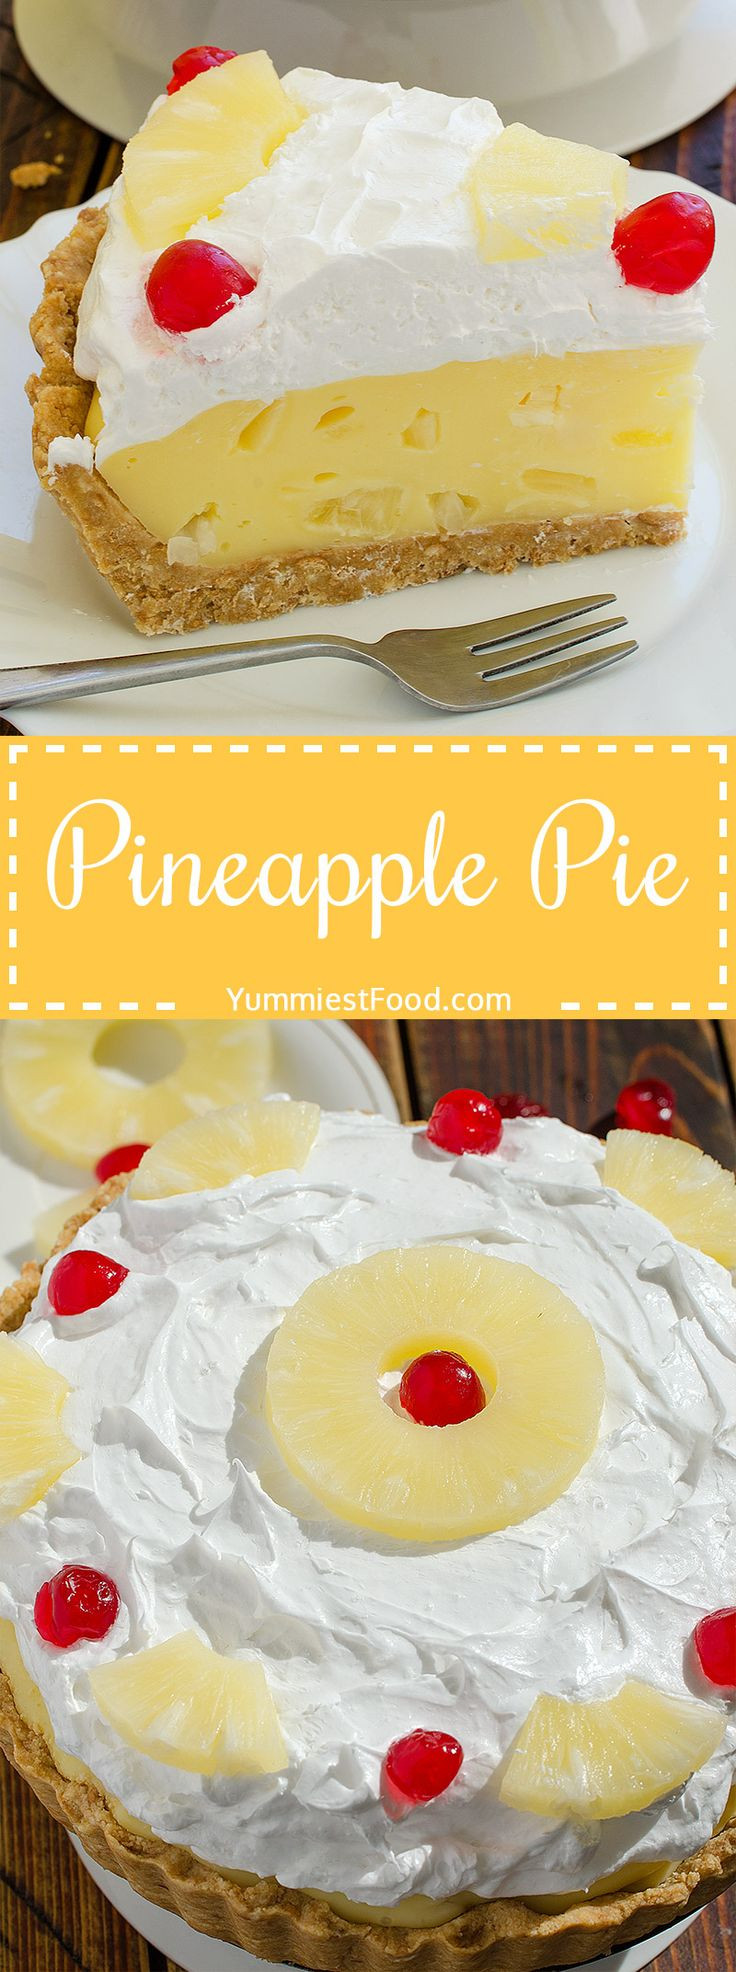 Summer Pie Recipes  100 Pineapple Pie Recipes on Pinterest